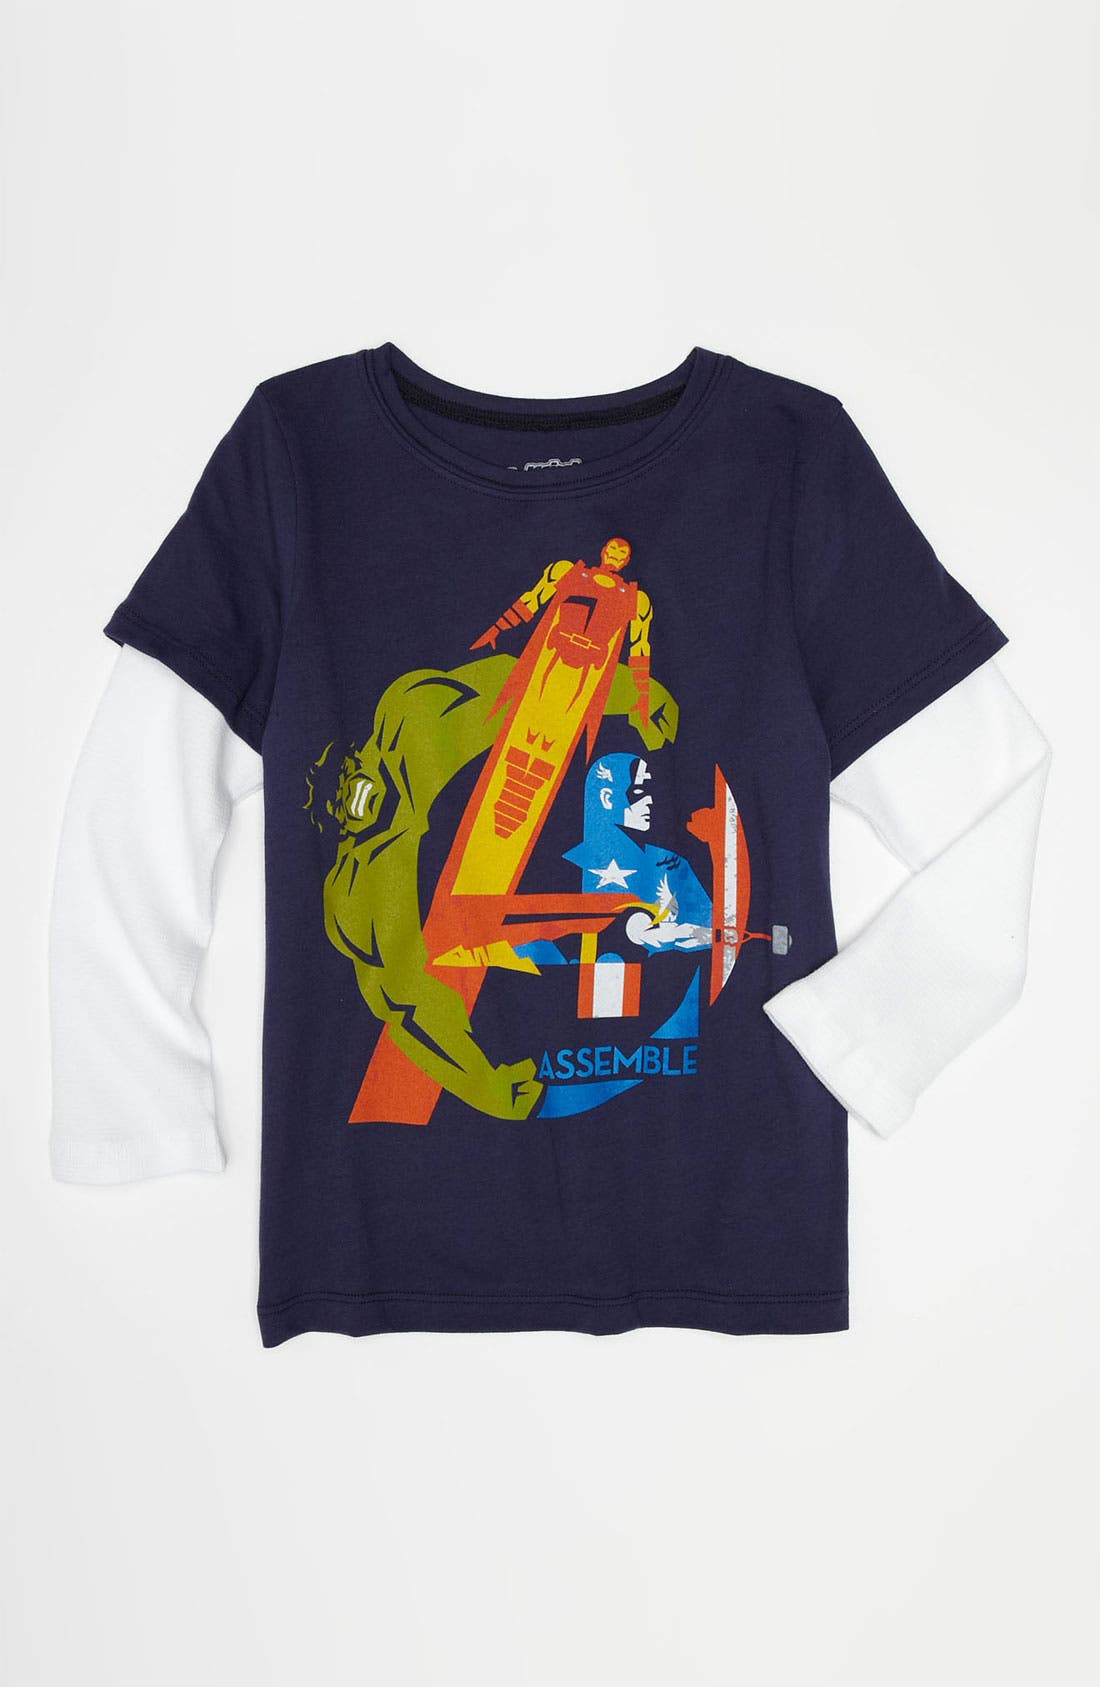 Alternate Image 1 Selected - Mighty Fine 'Assemble' T-Shirt (Little Boys)